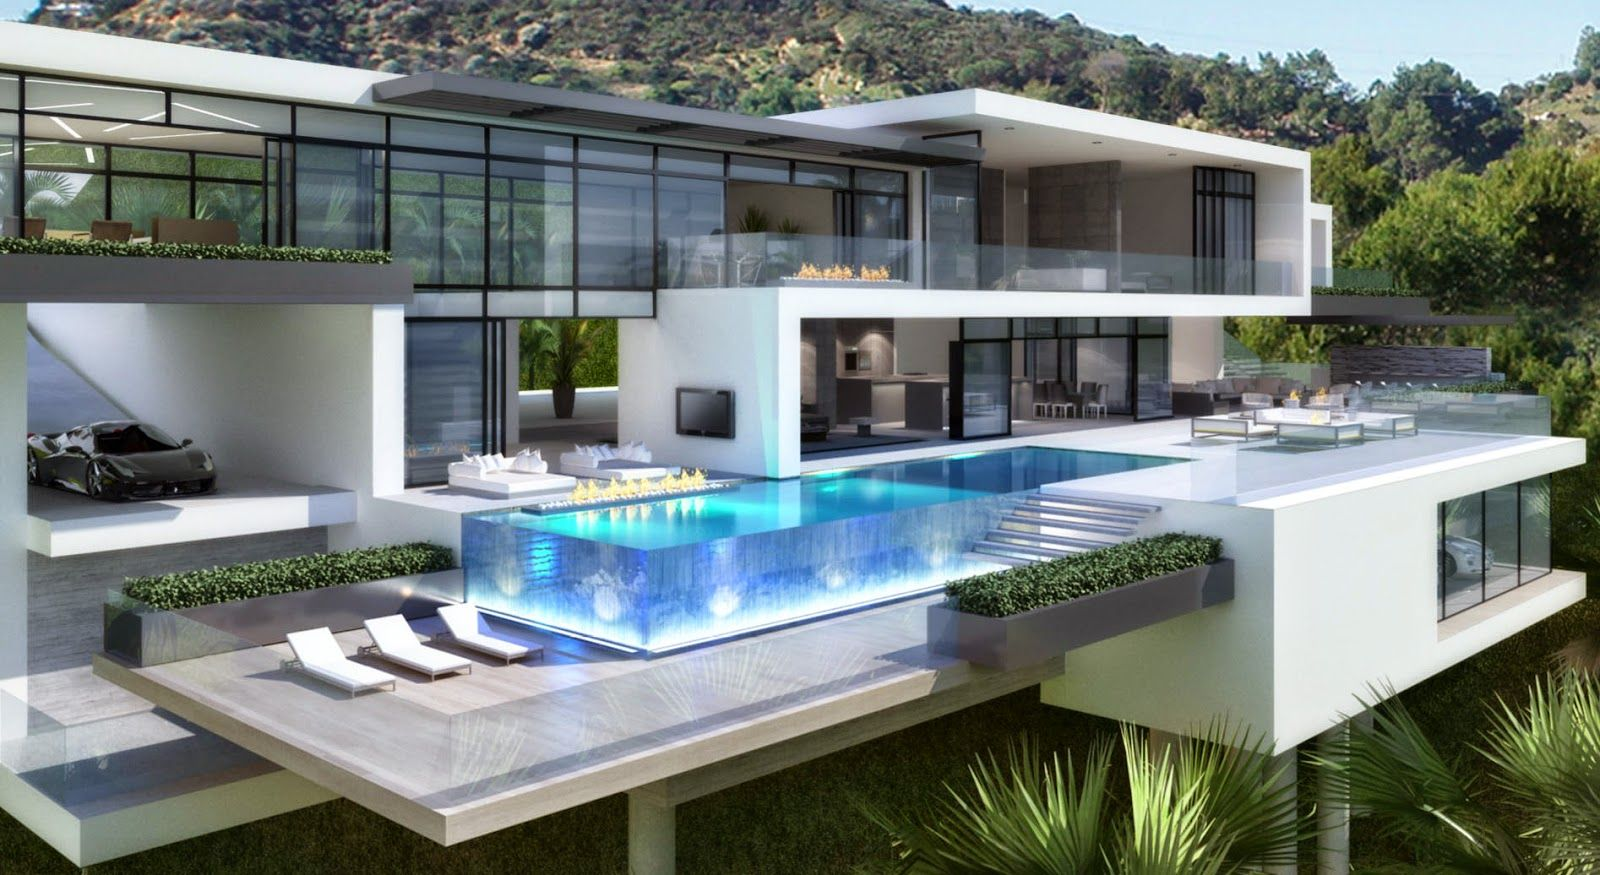 Fancy houses mansions beautiful modern house design big modern houses fancy houses big